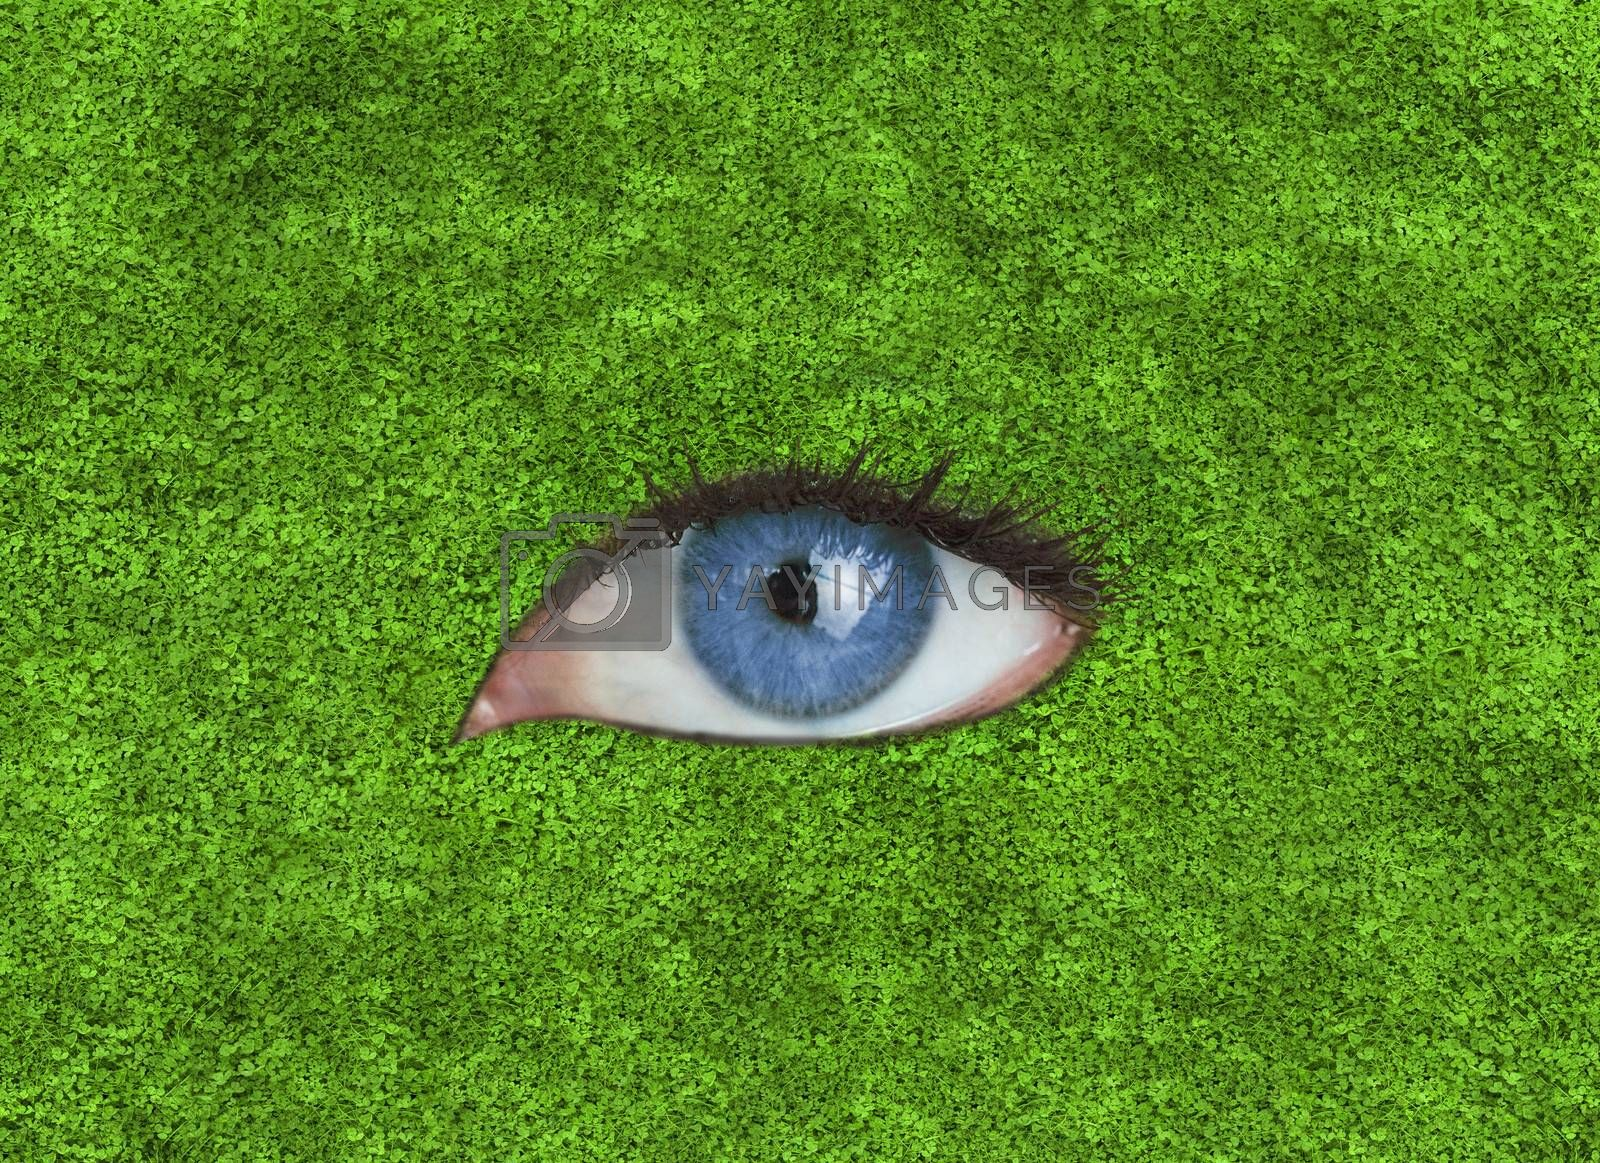 Blue eye in the middle of grass texture